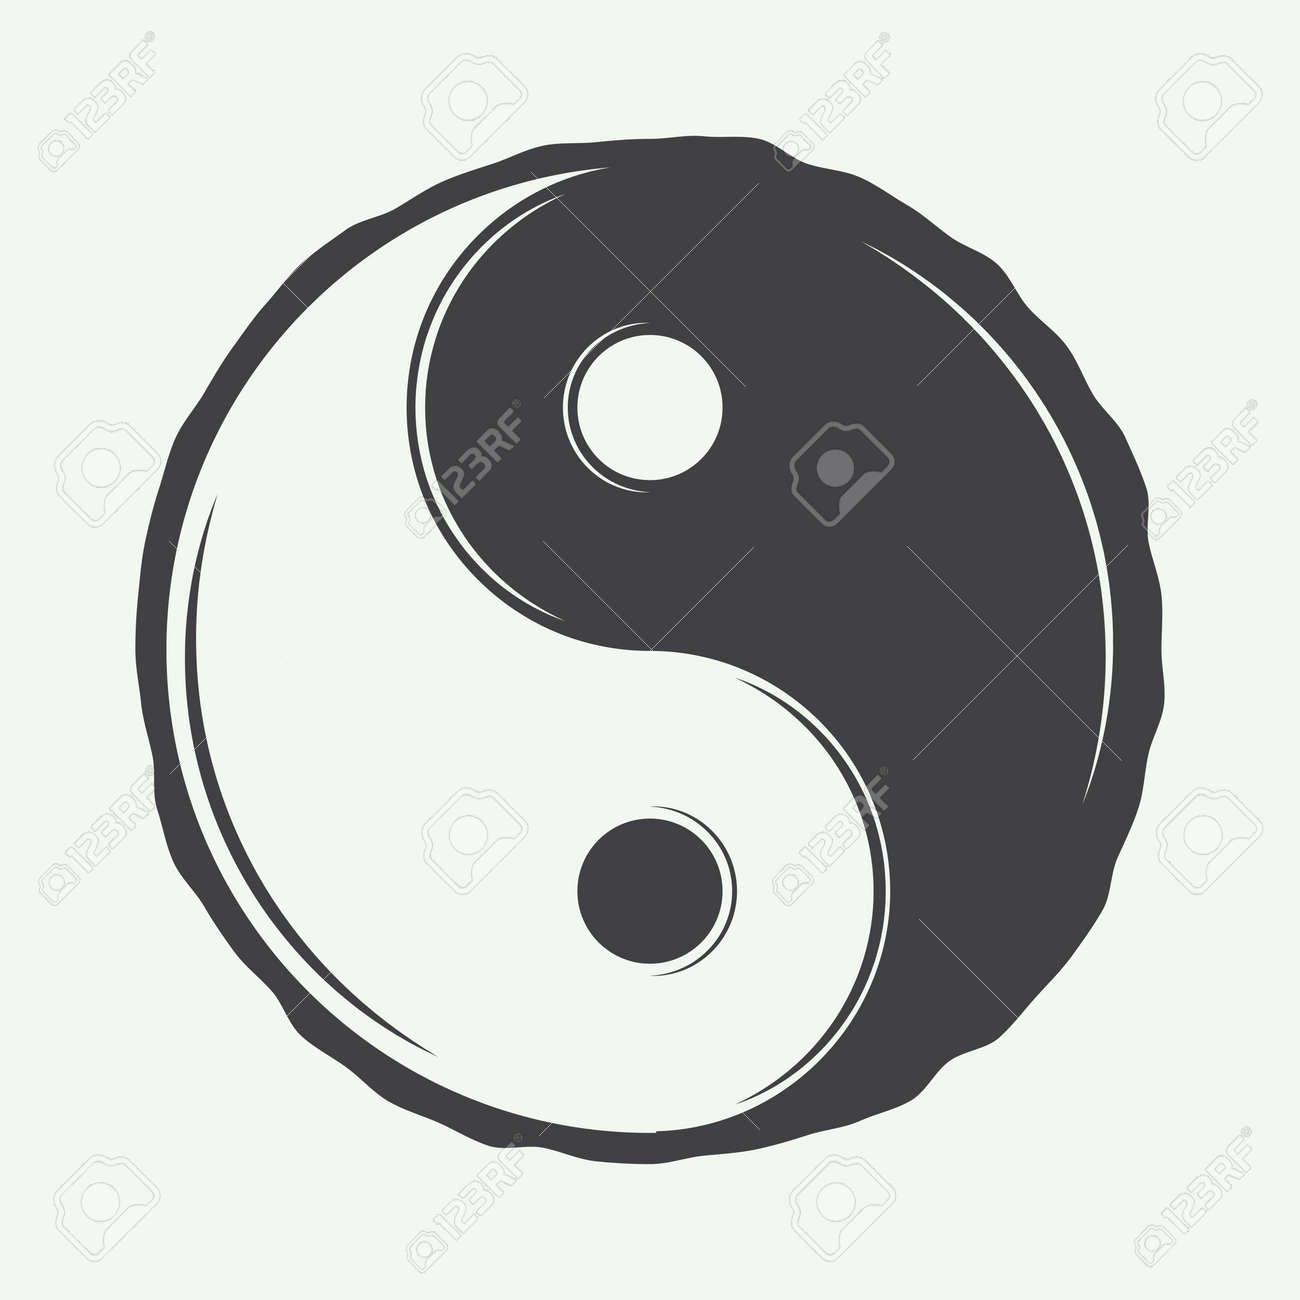 Vintage Yin Yang Symbol In Retro Style Can Be Used To Martial